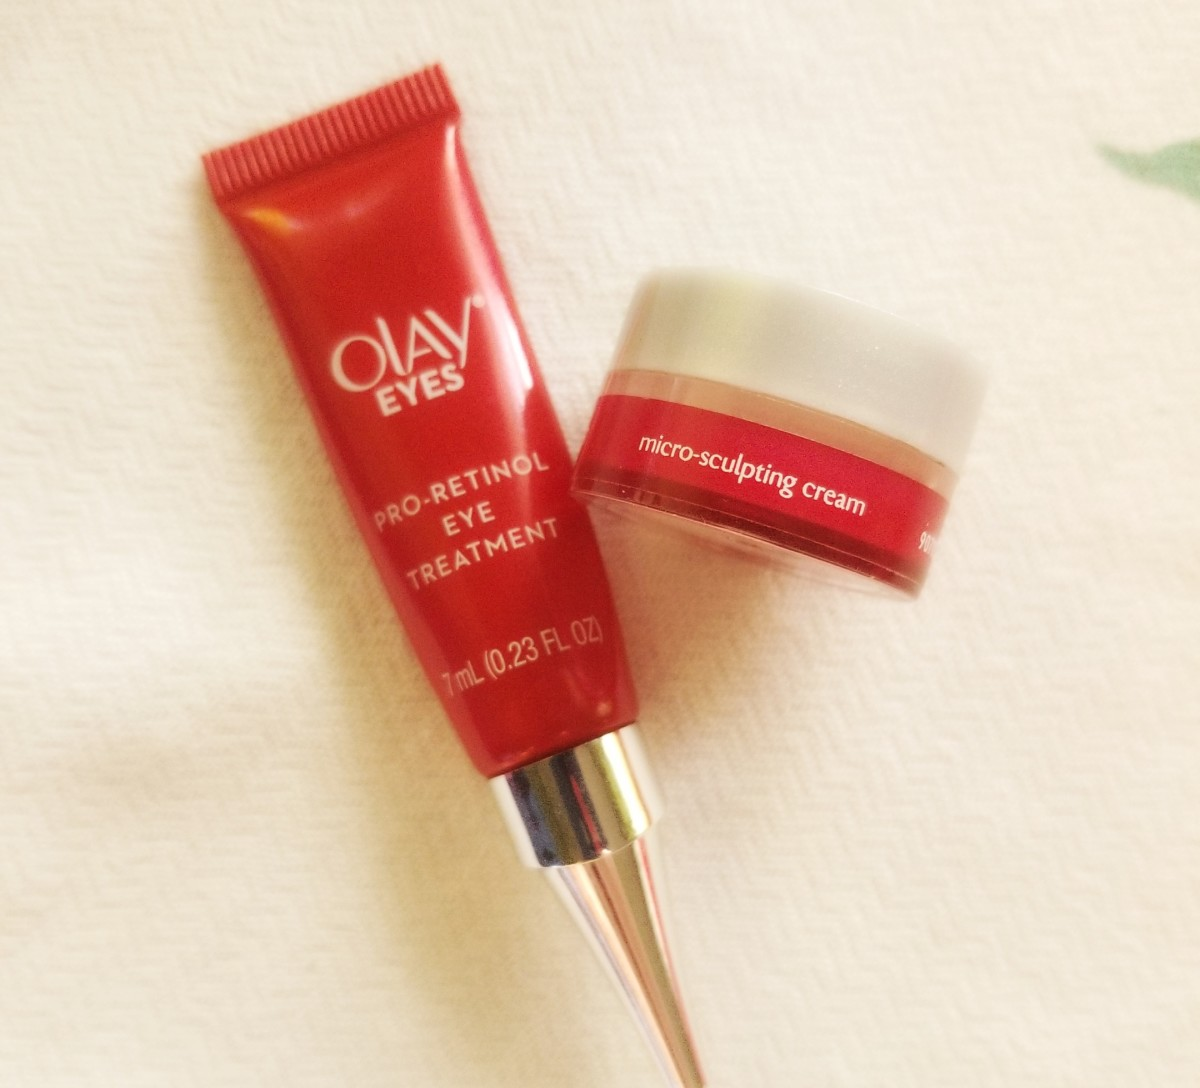 *I received these Olay samples complimentary for testing purposes. All opinions are my own.* These drastically changed the look and feel of my skin!